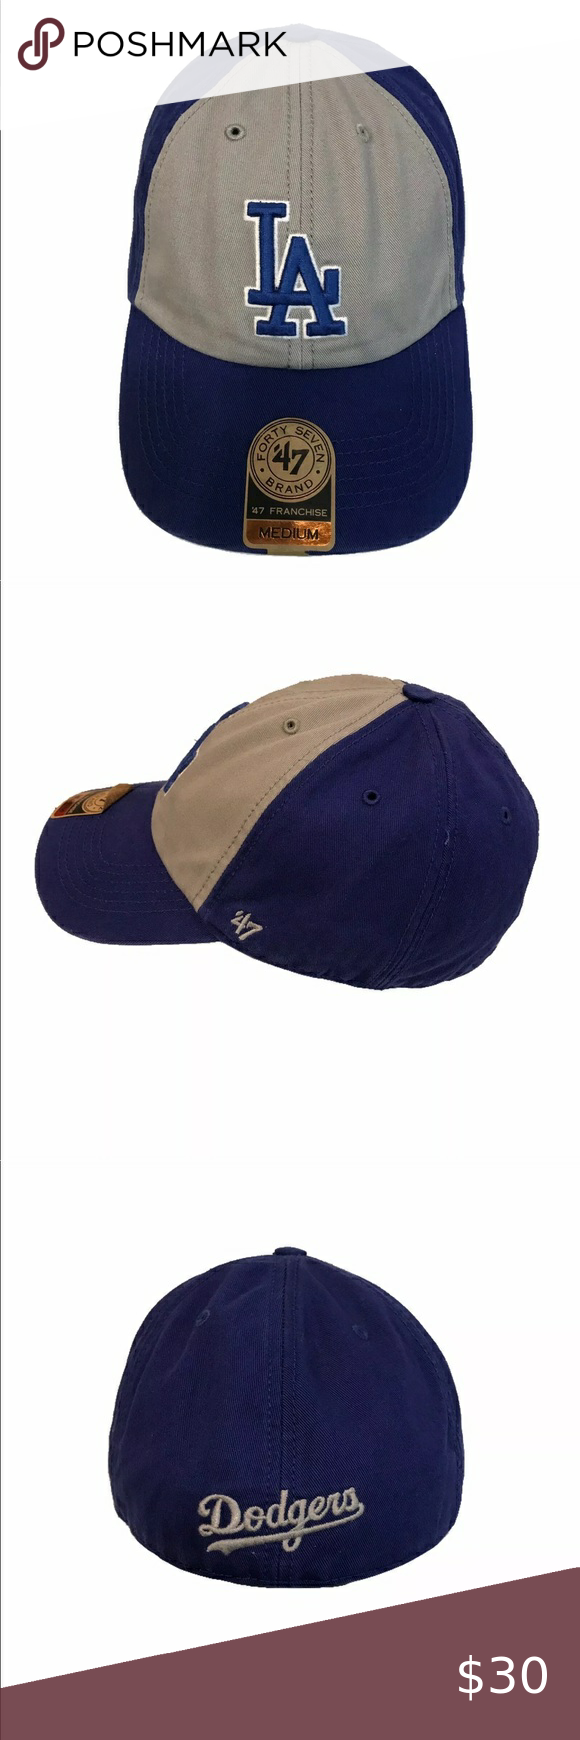 La Dodgers 47 Franchise Vip Relaxed M Fitted Cap Fitted Caps La Dodgers 47 Brand